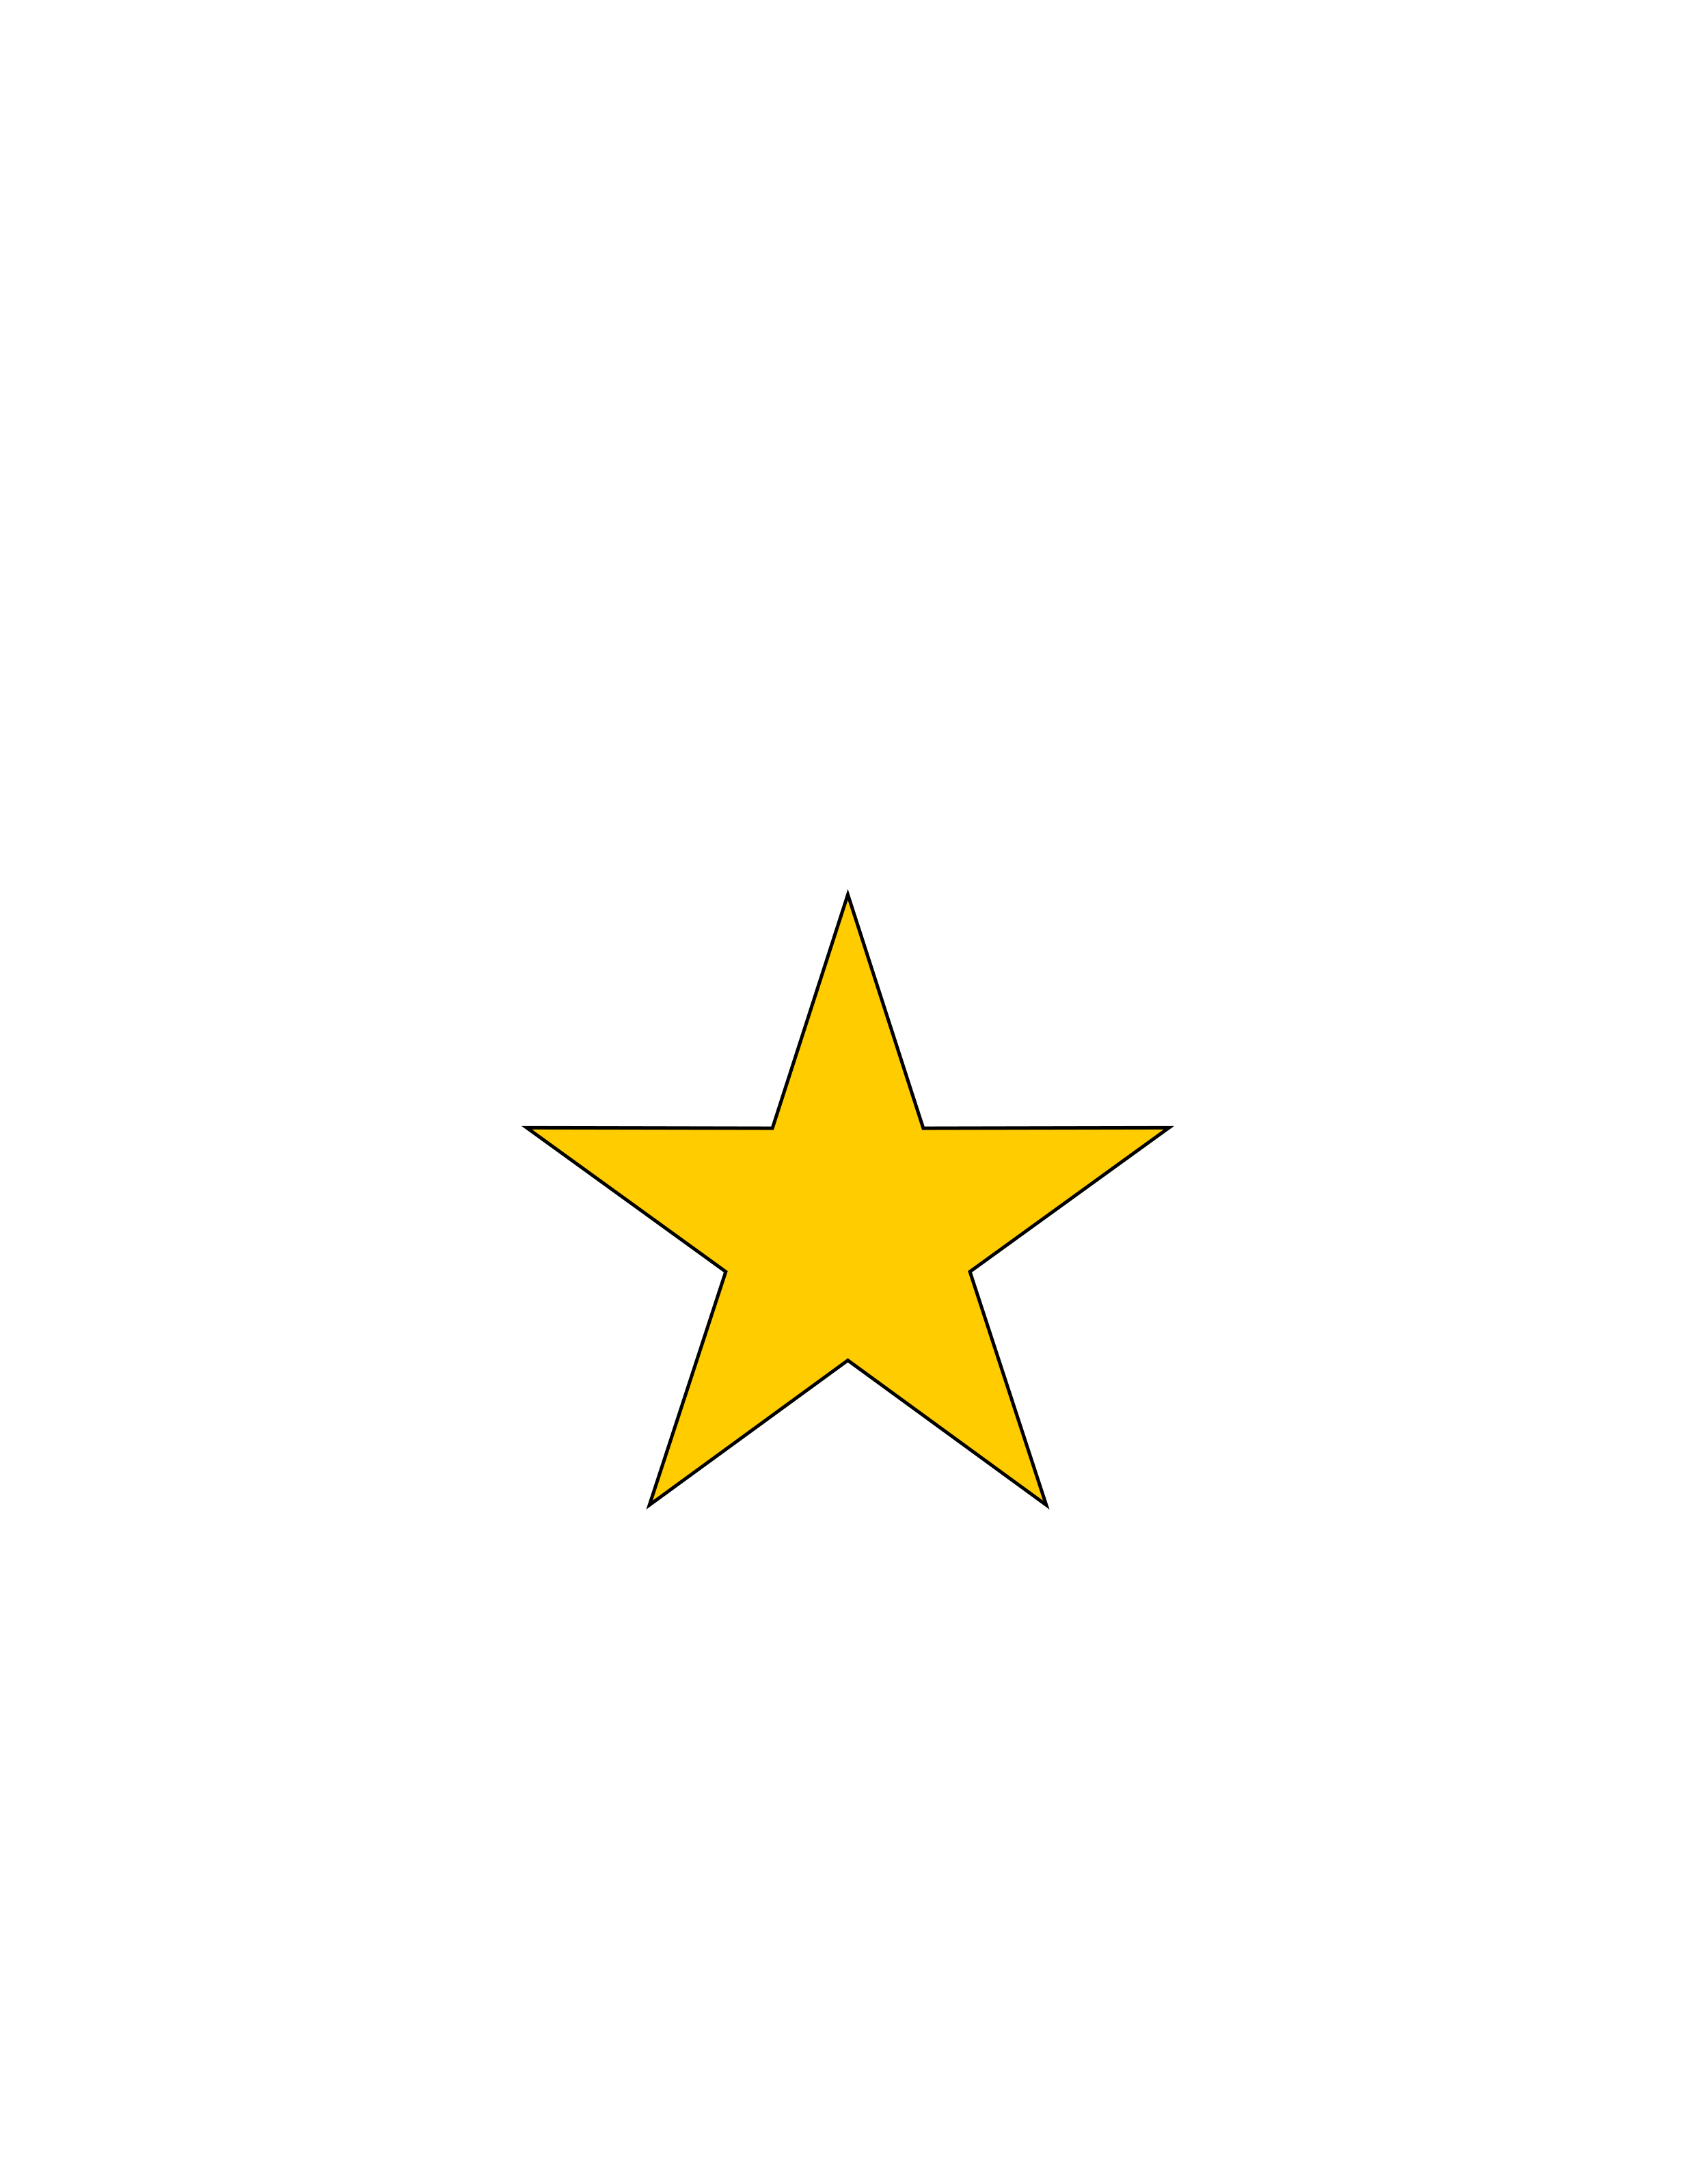 Gold star with black outline